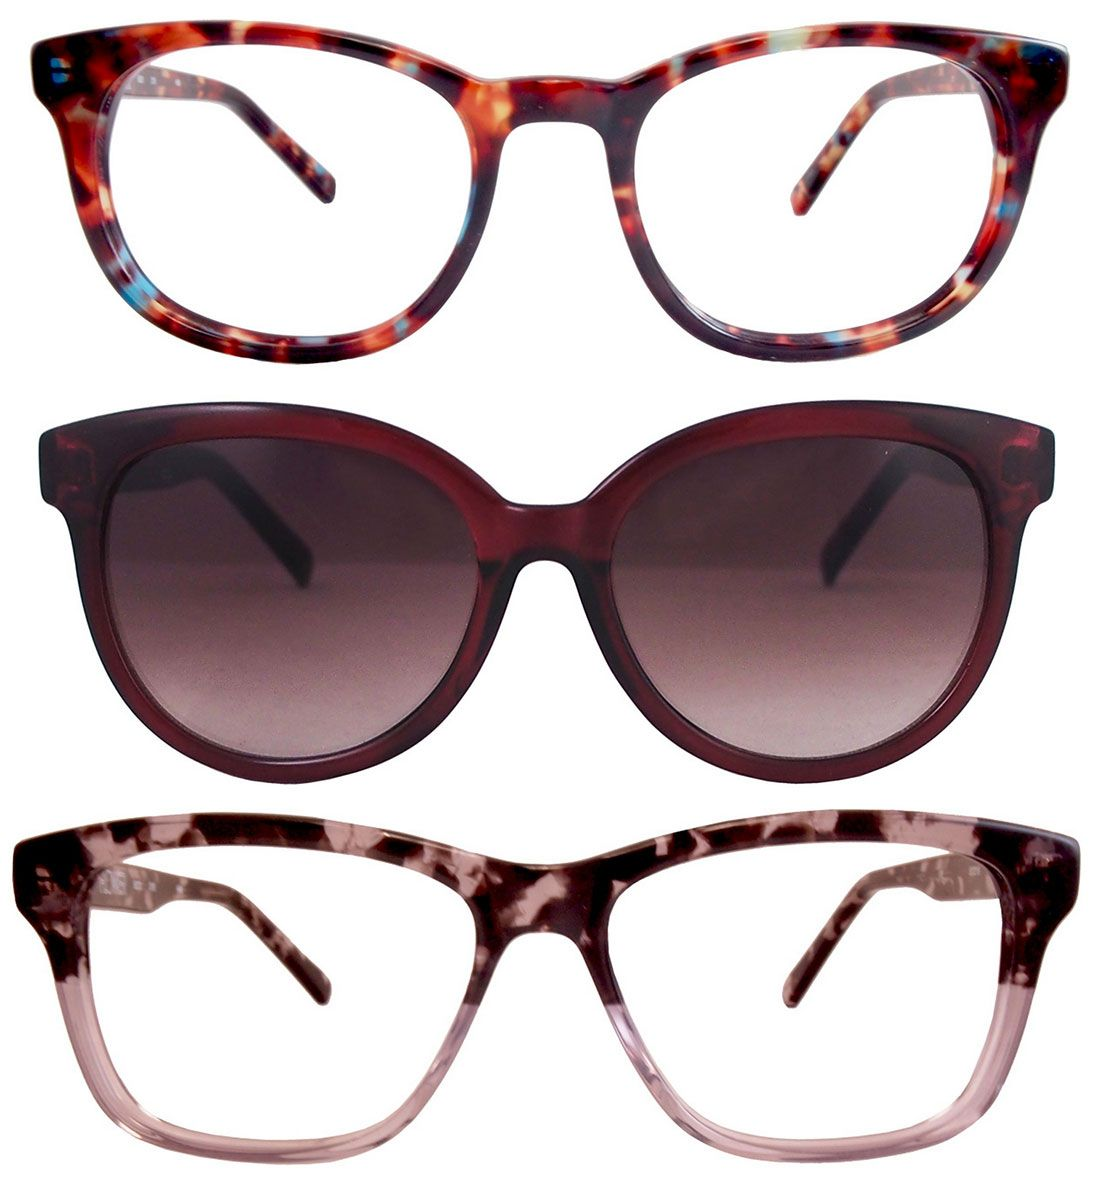 Just frames for glasses - Drew Barrymore Just Launched A Gorgeous Eyewear Line Via Brit Co